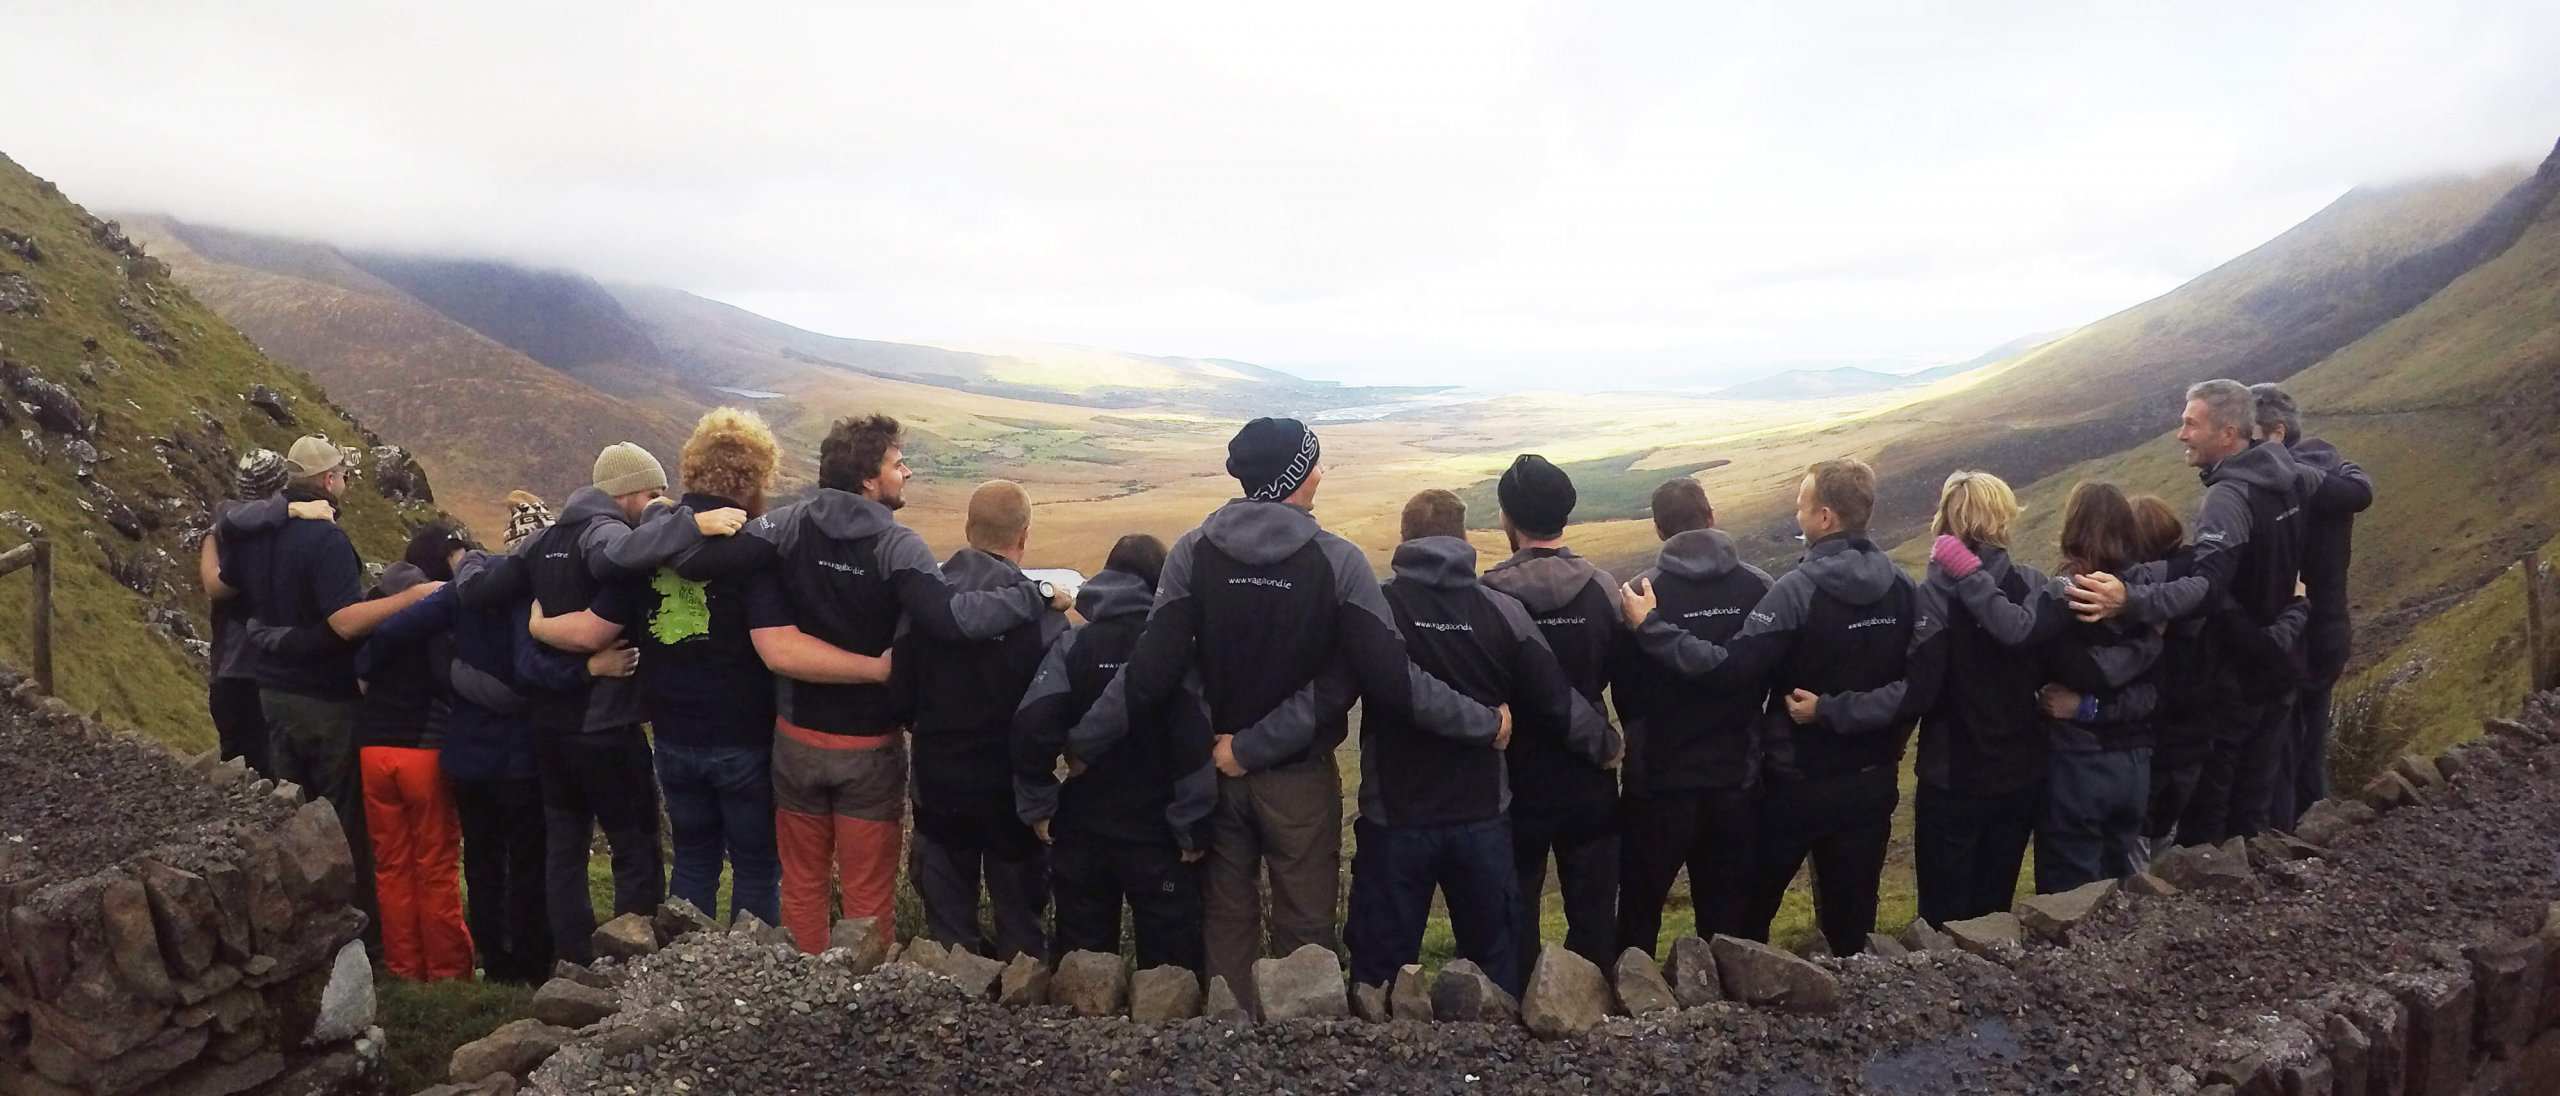 Panoramic shot of Vagabond Tour Guides link arms with their backs to the camera with a scenic valley in Ireland in the background